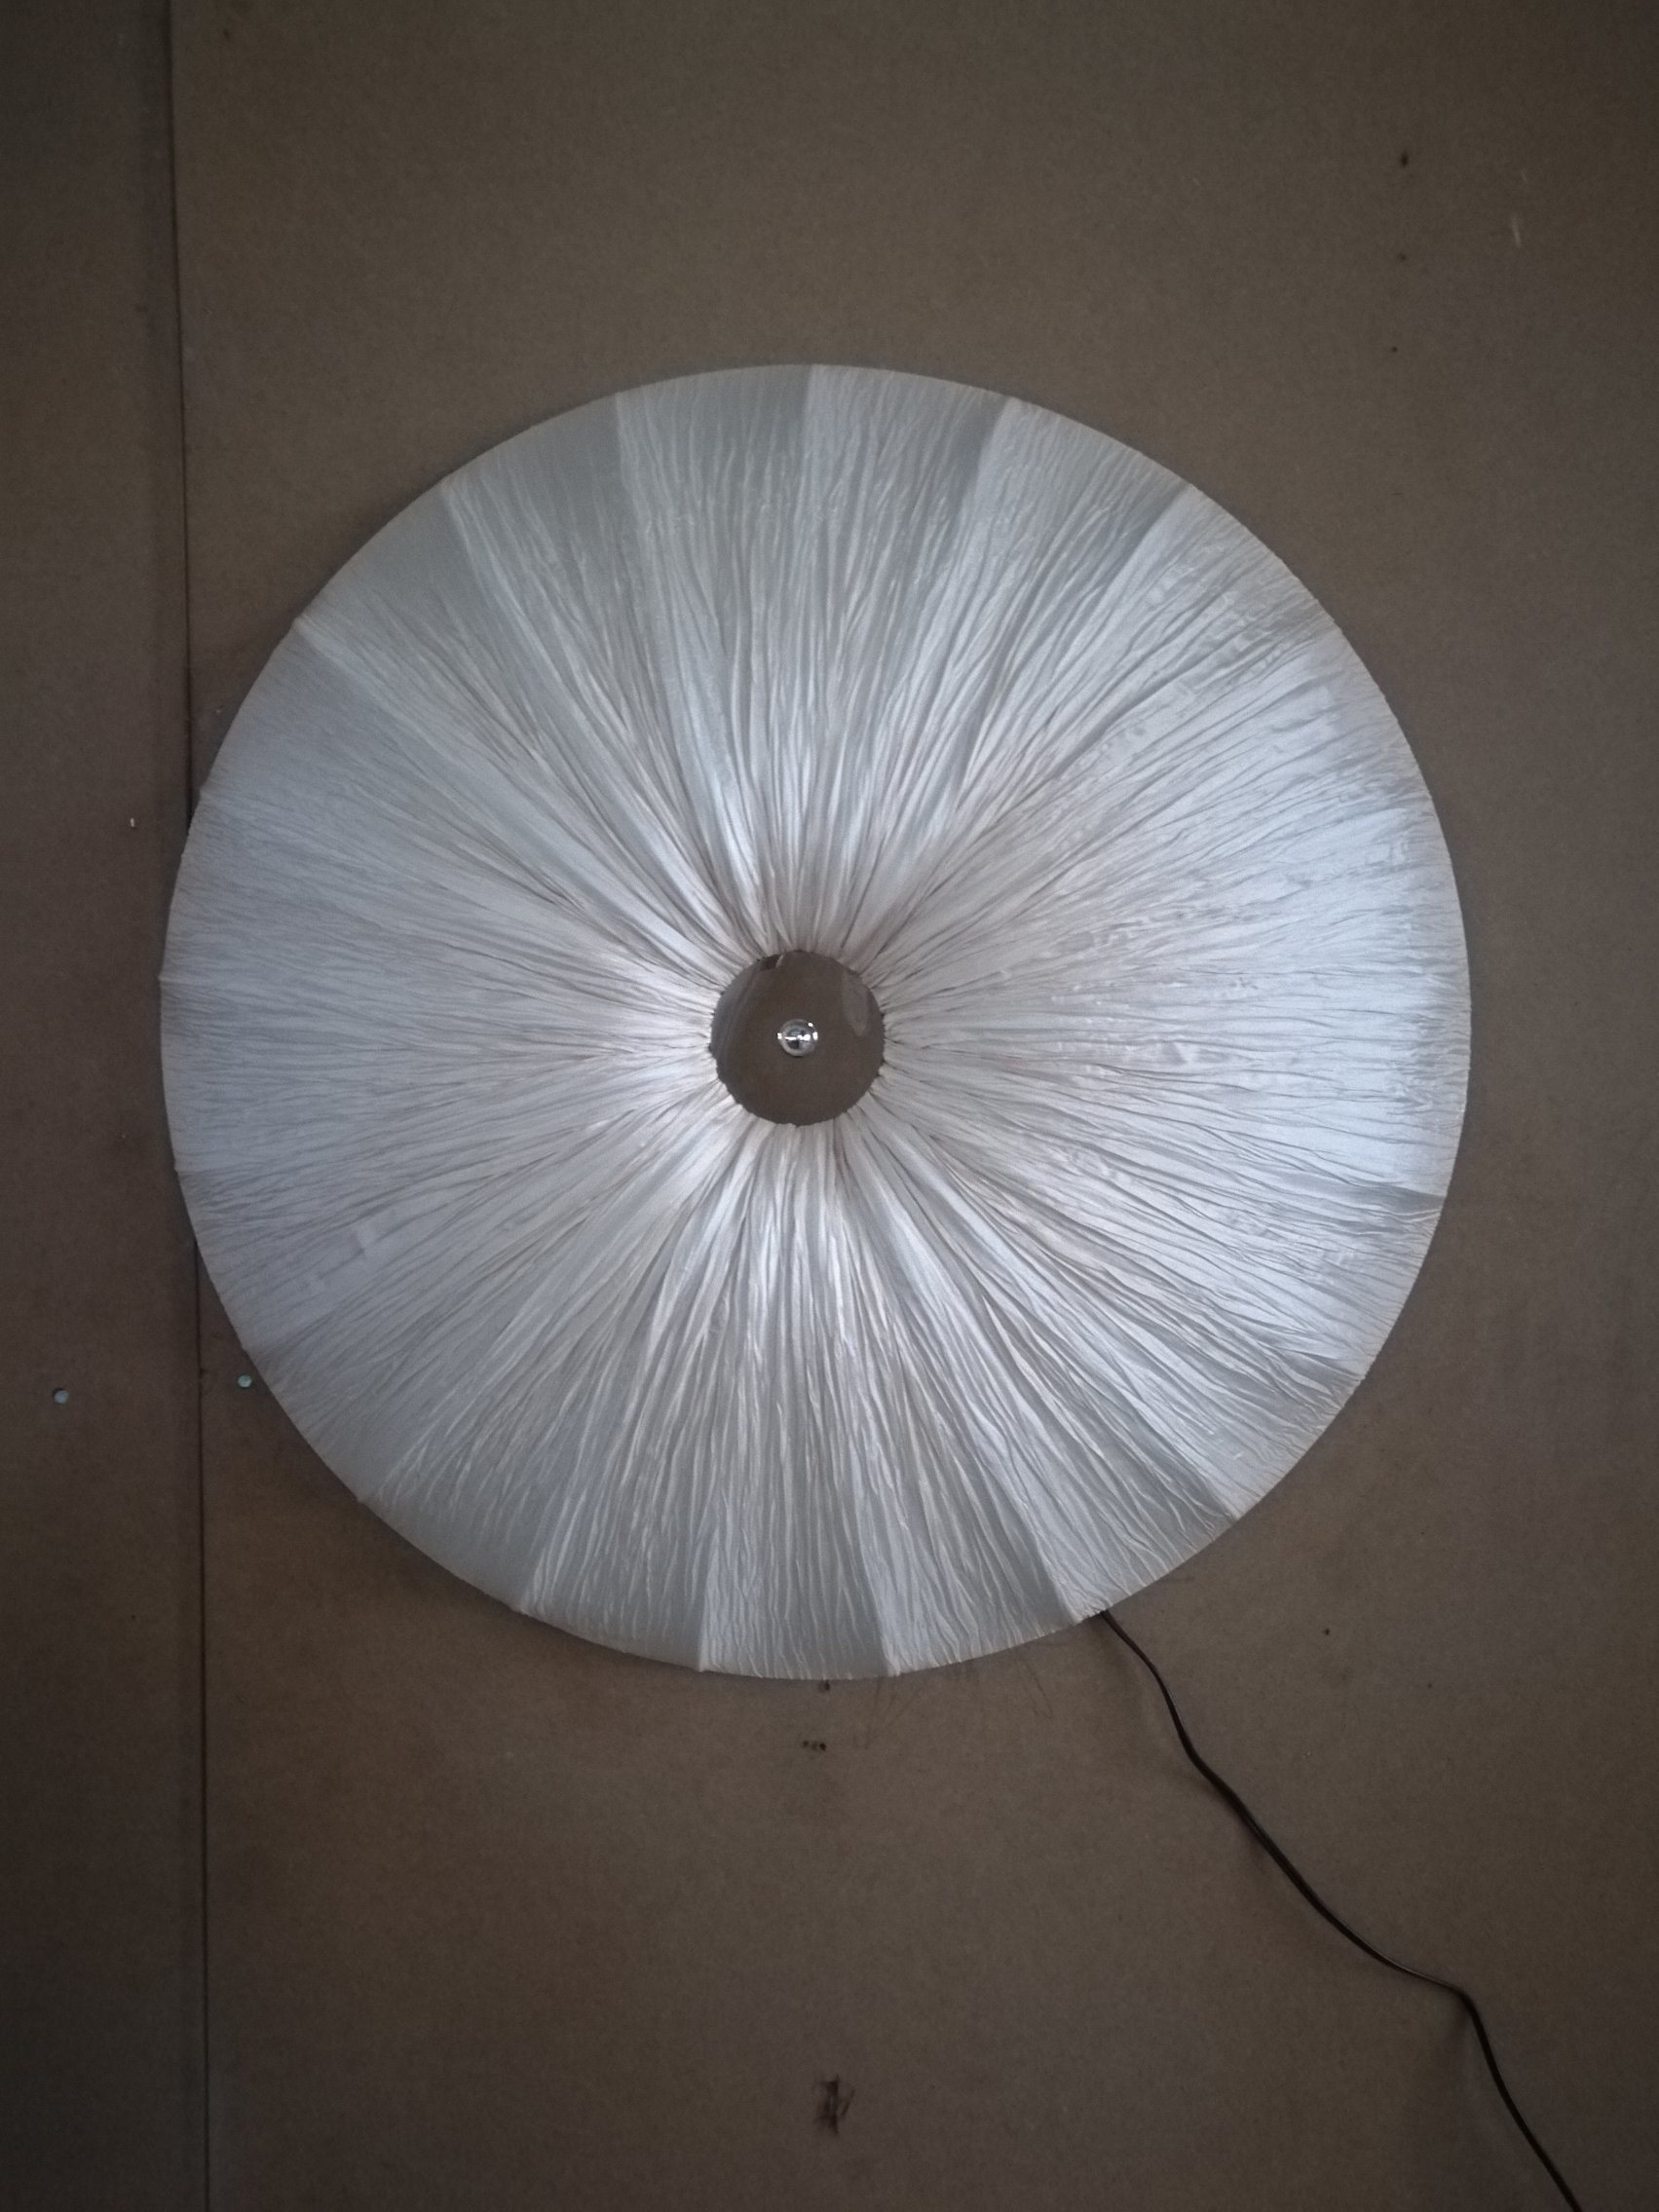 Round Shade Wrinkled Fabric Ceiling Lamp with 3 Sockets (C5006147)